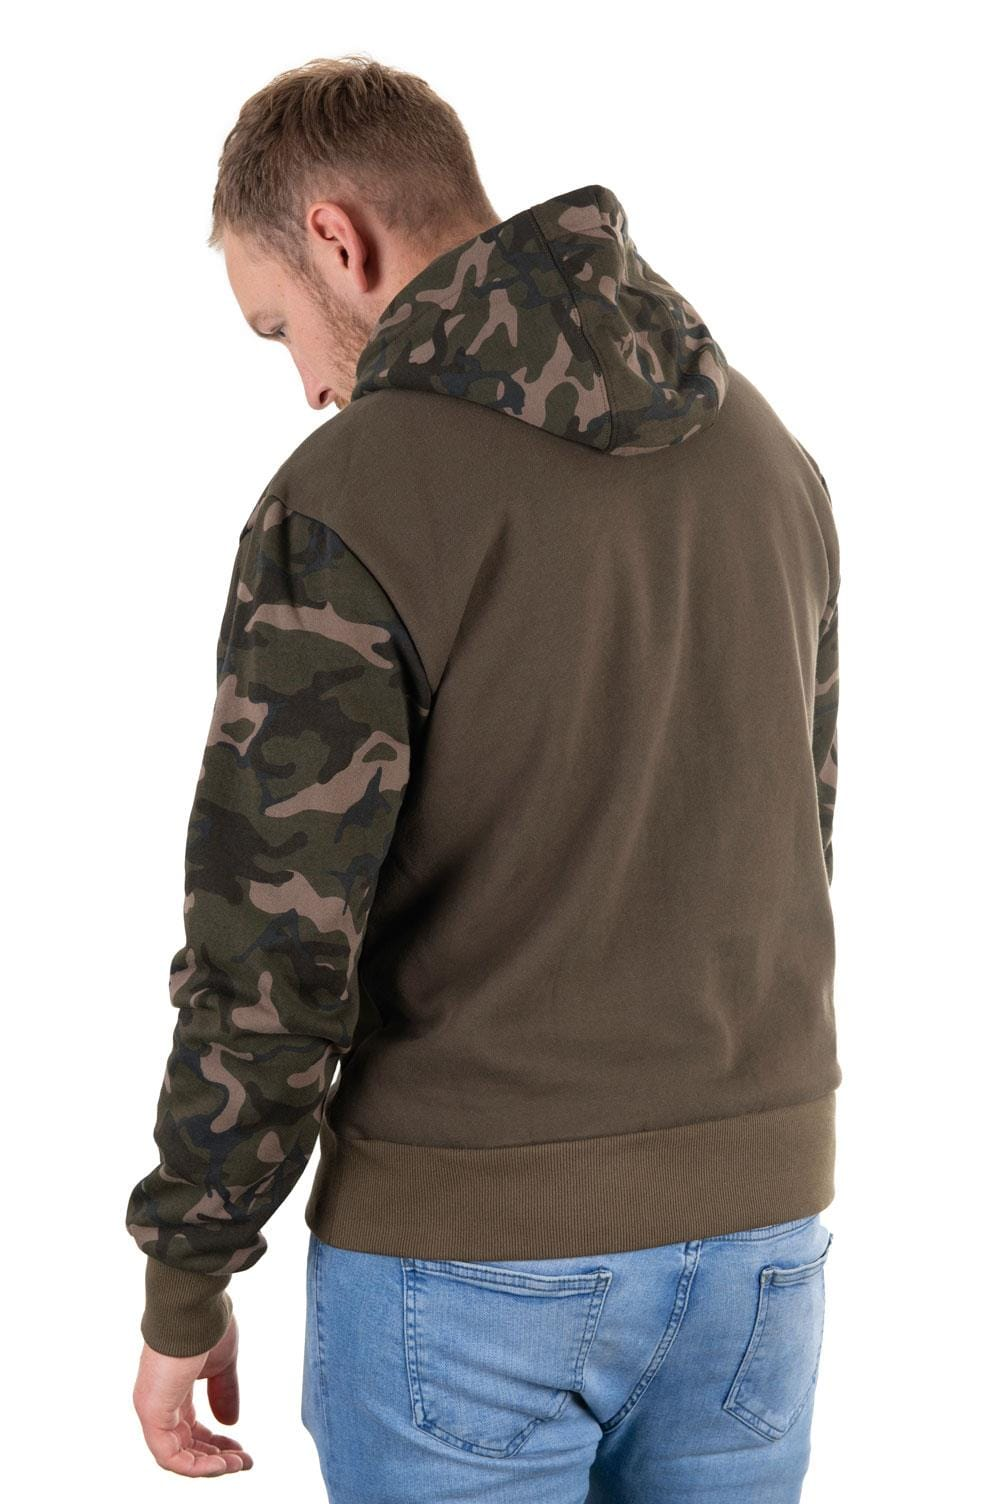 FOX Khaki/Camo Hoody - Medium